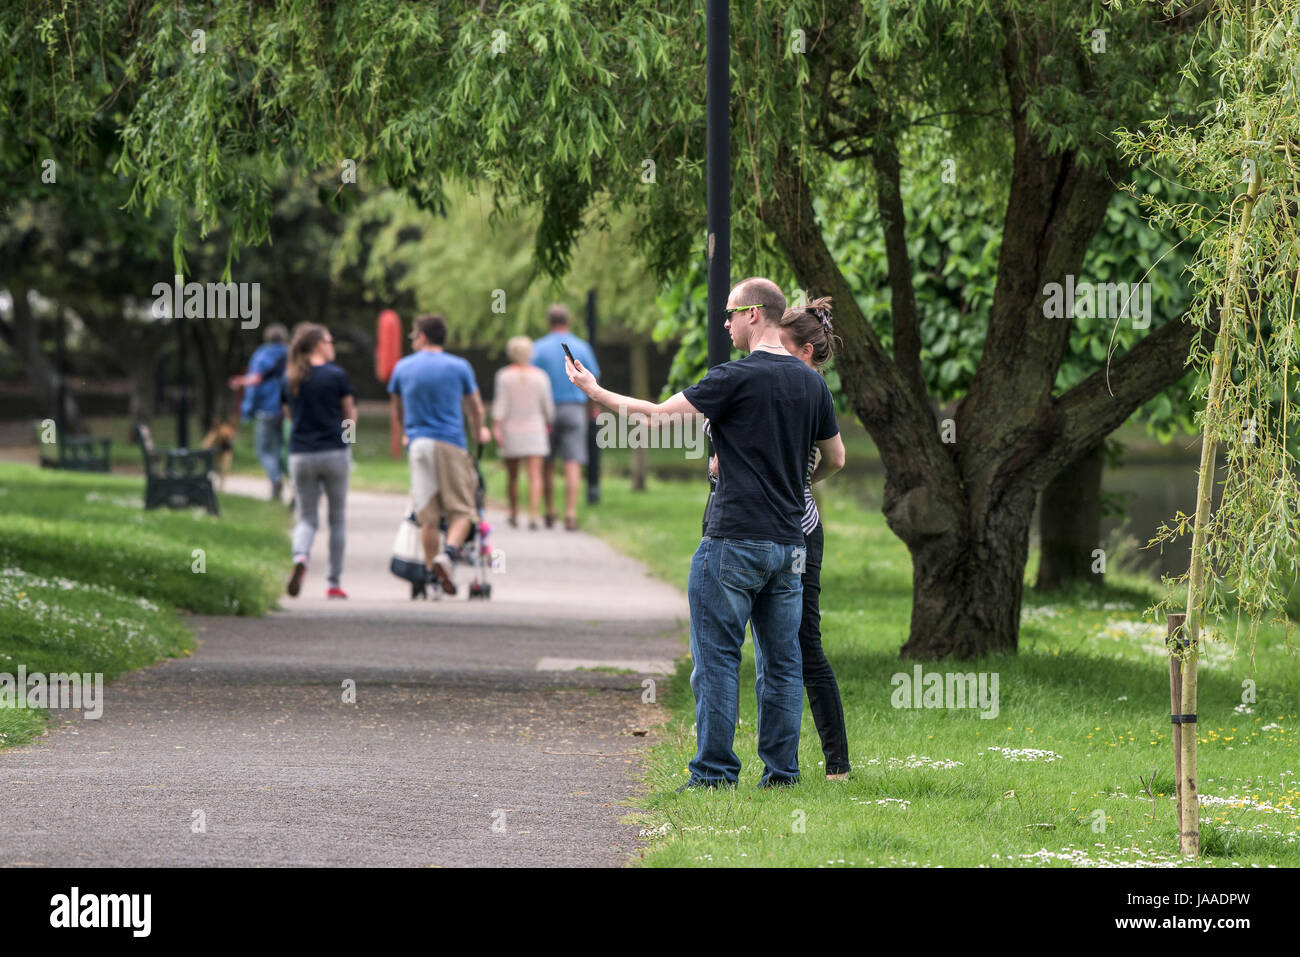 A couple taking a selfie in a park. - Stock Image